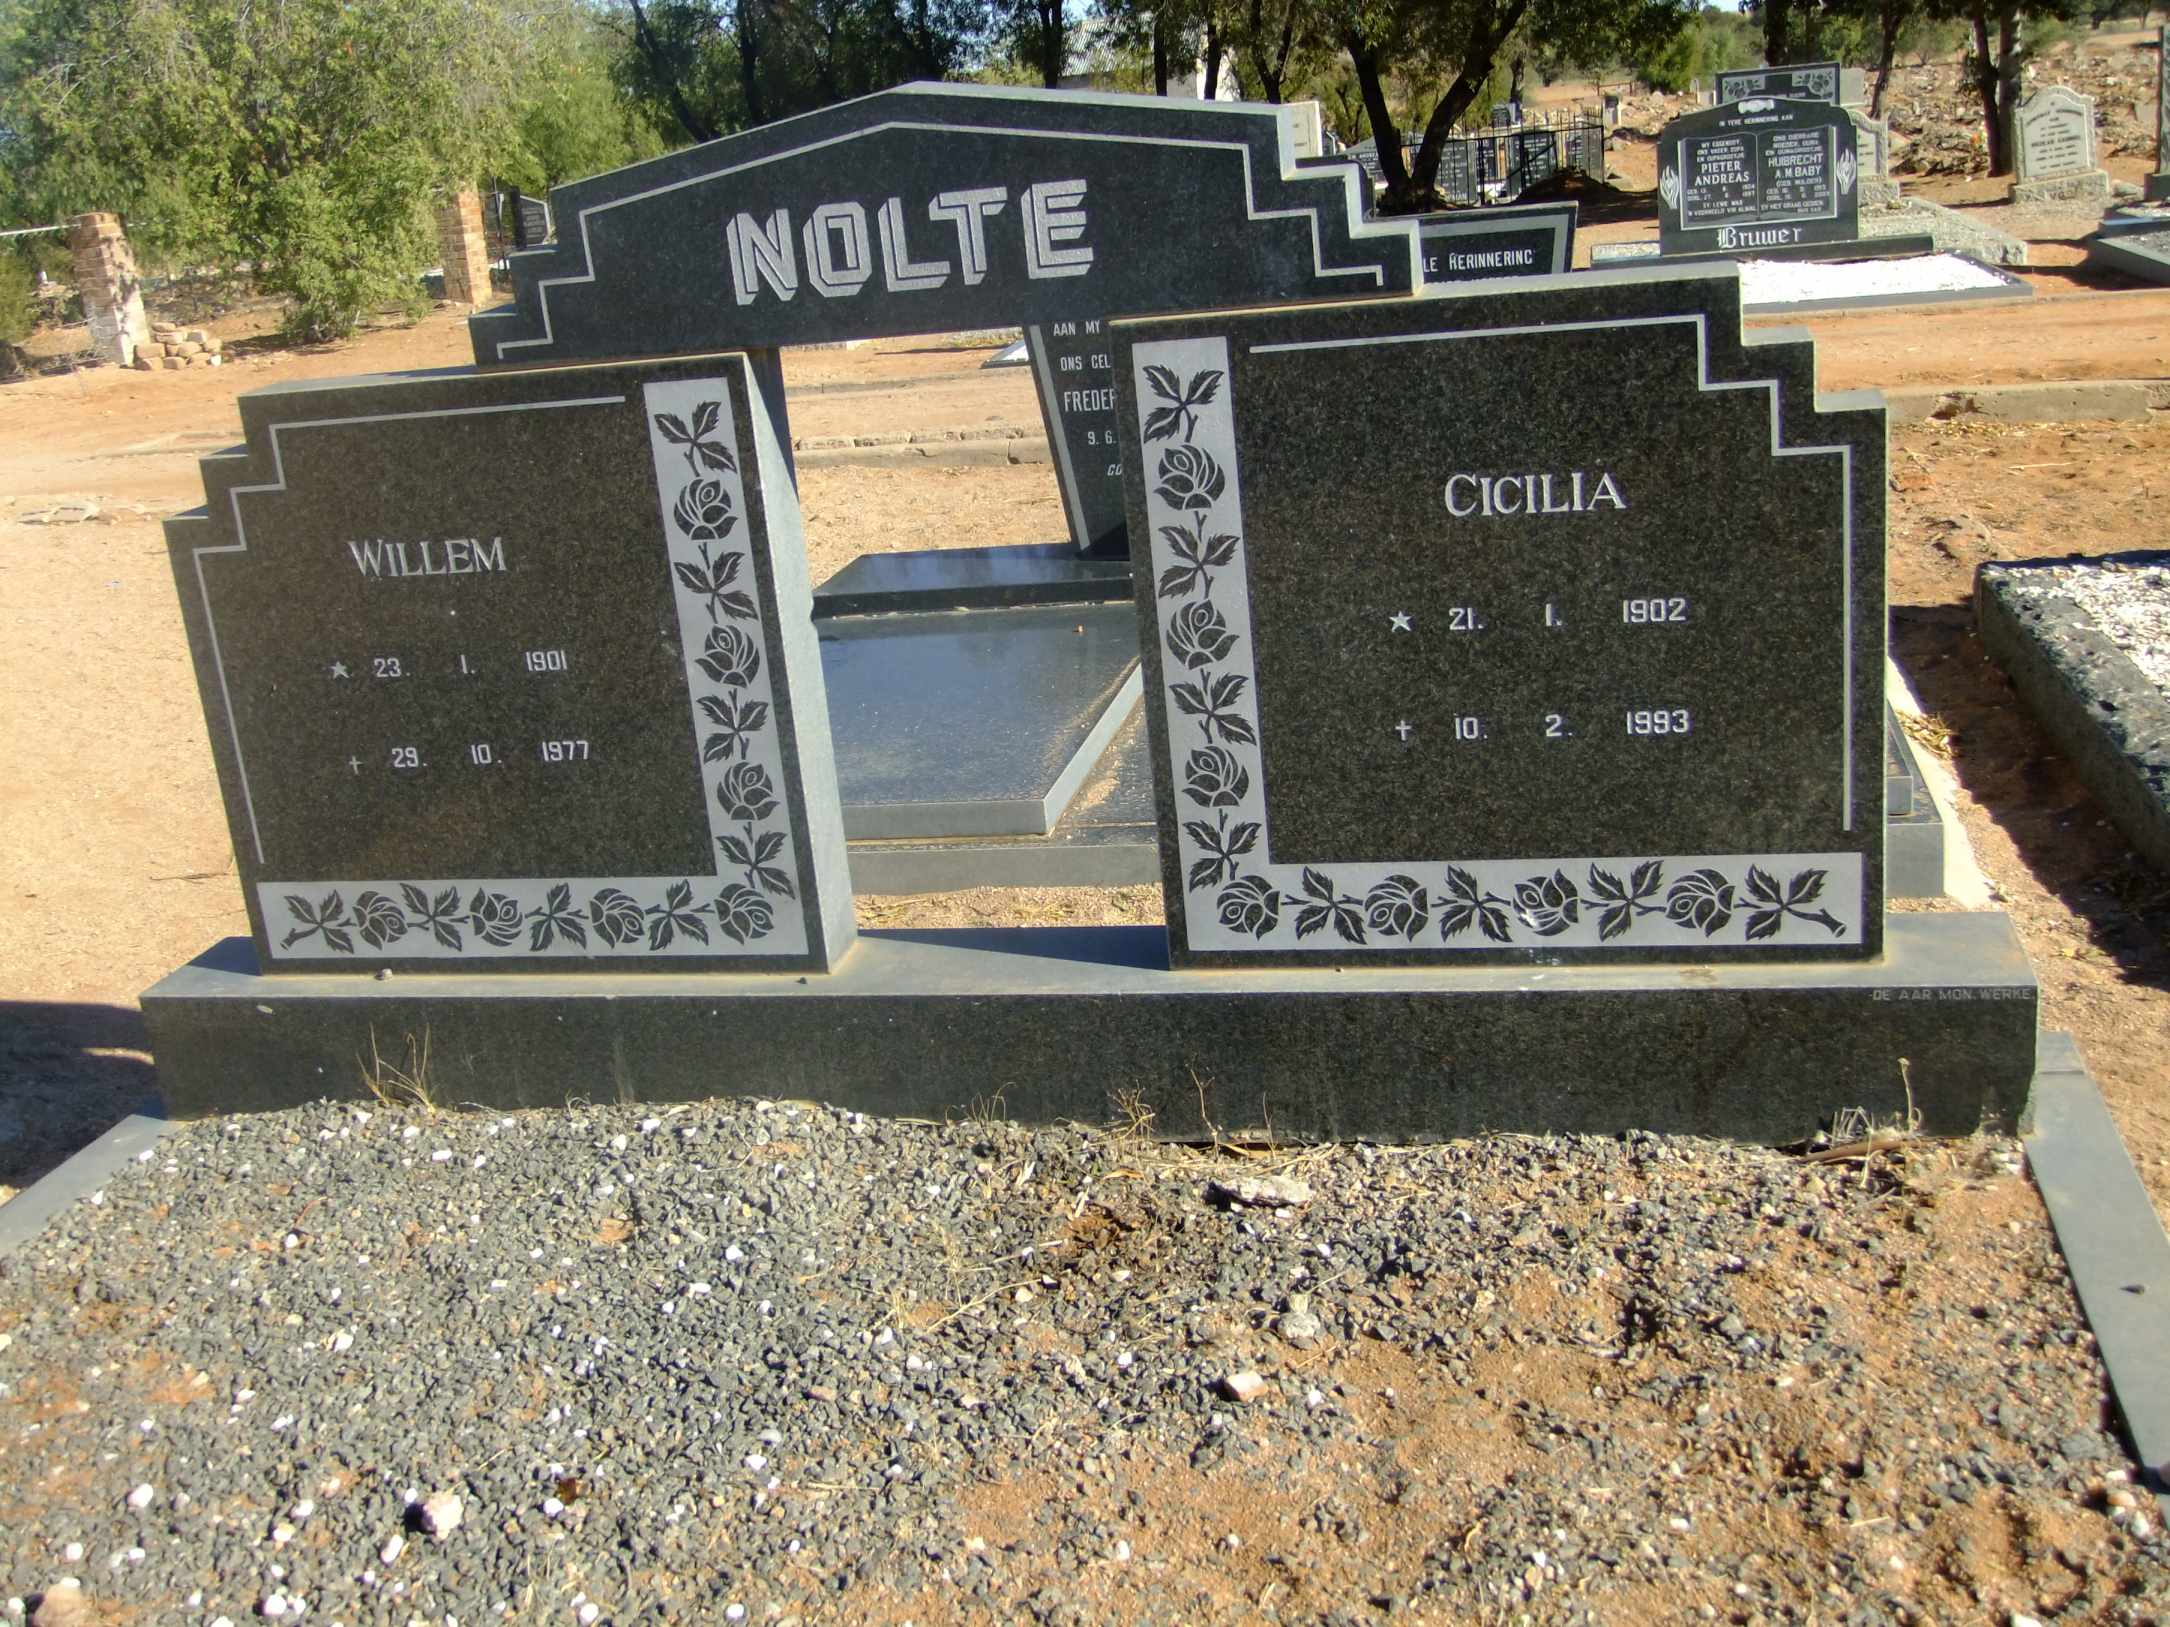 Nolte, Willem born 23 January 1901 died 29 October 1977 and Cicilia born 21 January 1902 died 10 January 1993